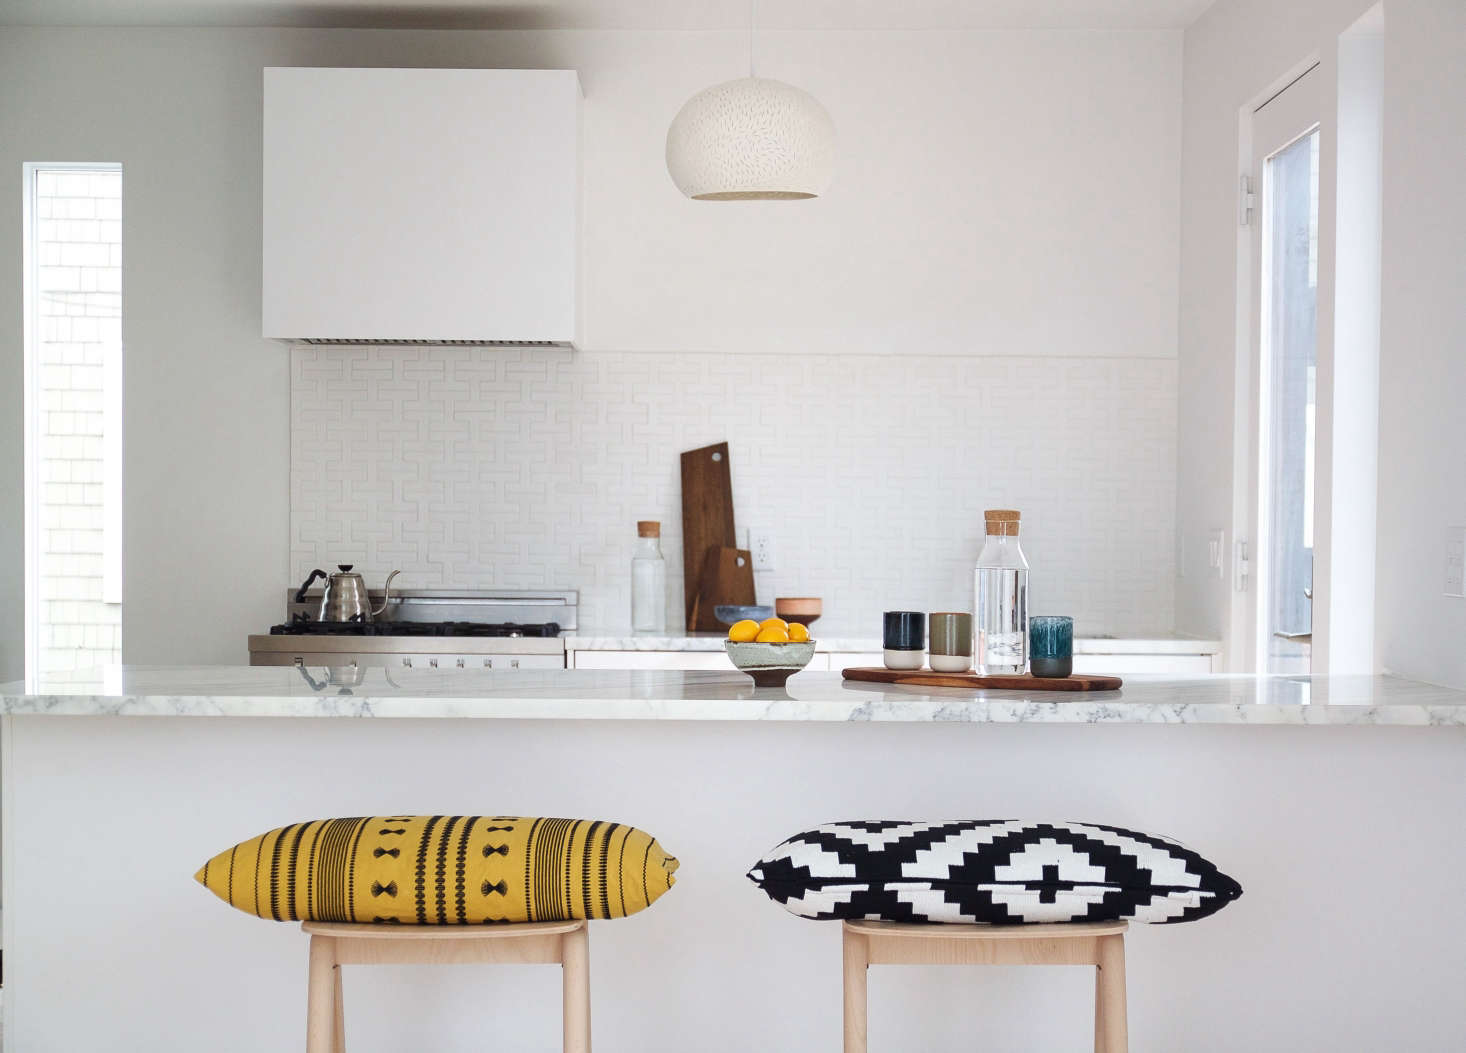 Subtle splashes of color saved the crisp, clean space from becoming too stark.